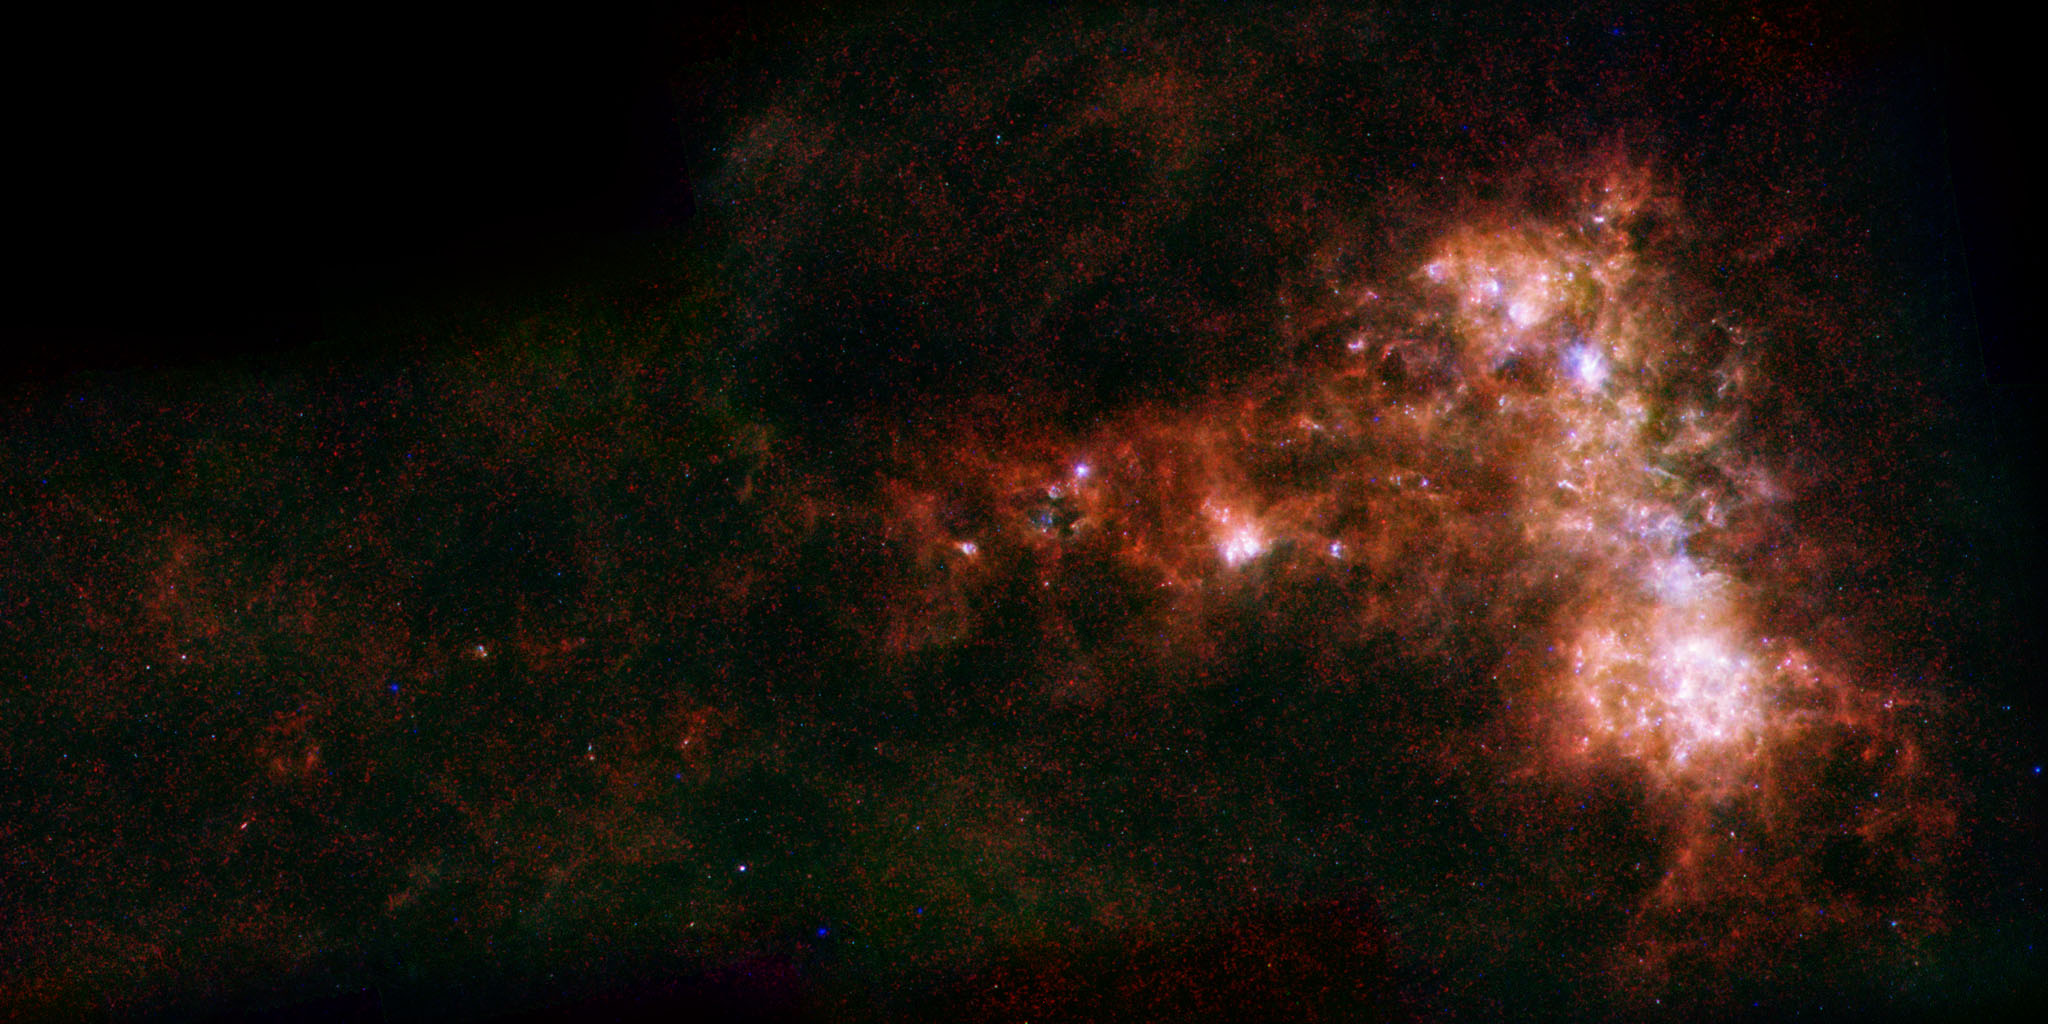 In combined data from ESA's Herschel and NASA's Spitzer telescopes, irregular distribution of dust in the Small Magellanic Cloud becomes clear. A stream of dust extends to left, known as the galaxy's 'wing,' and a bar of star formation appears to right.